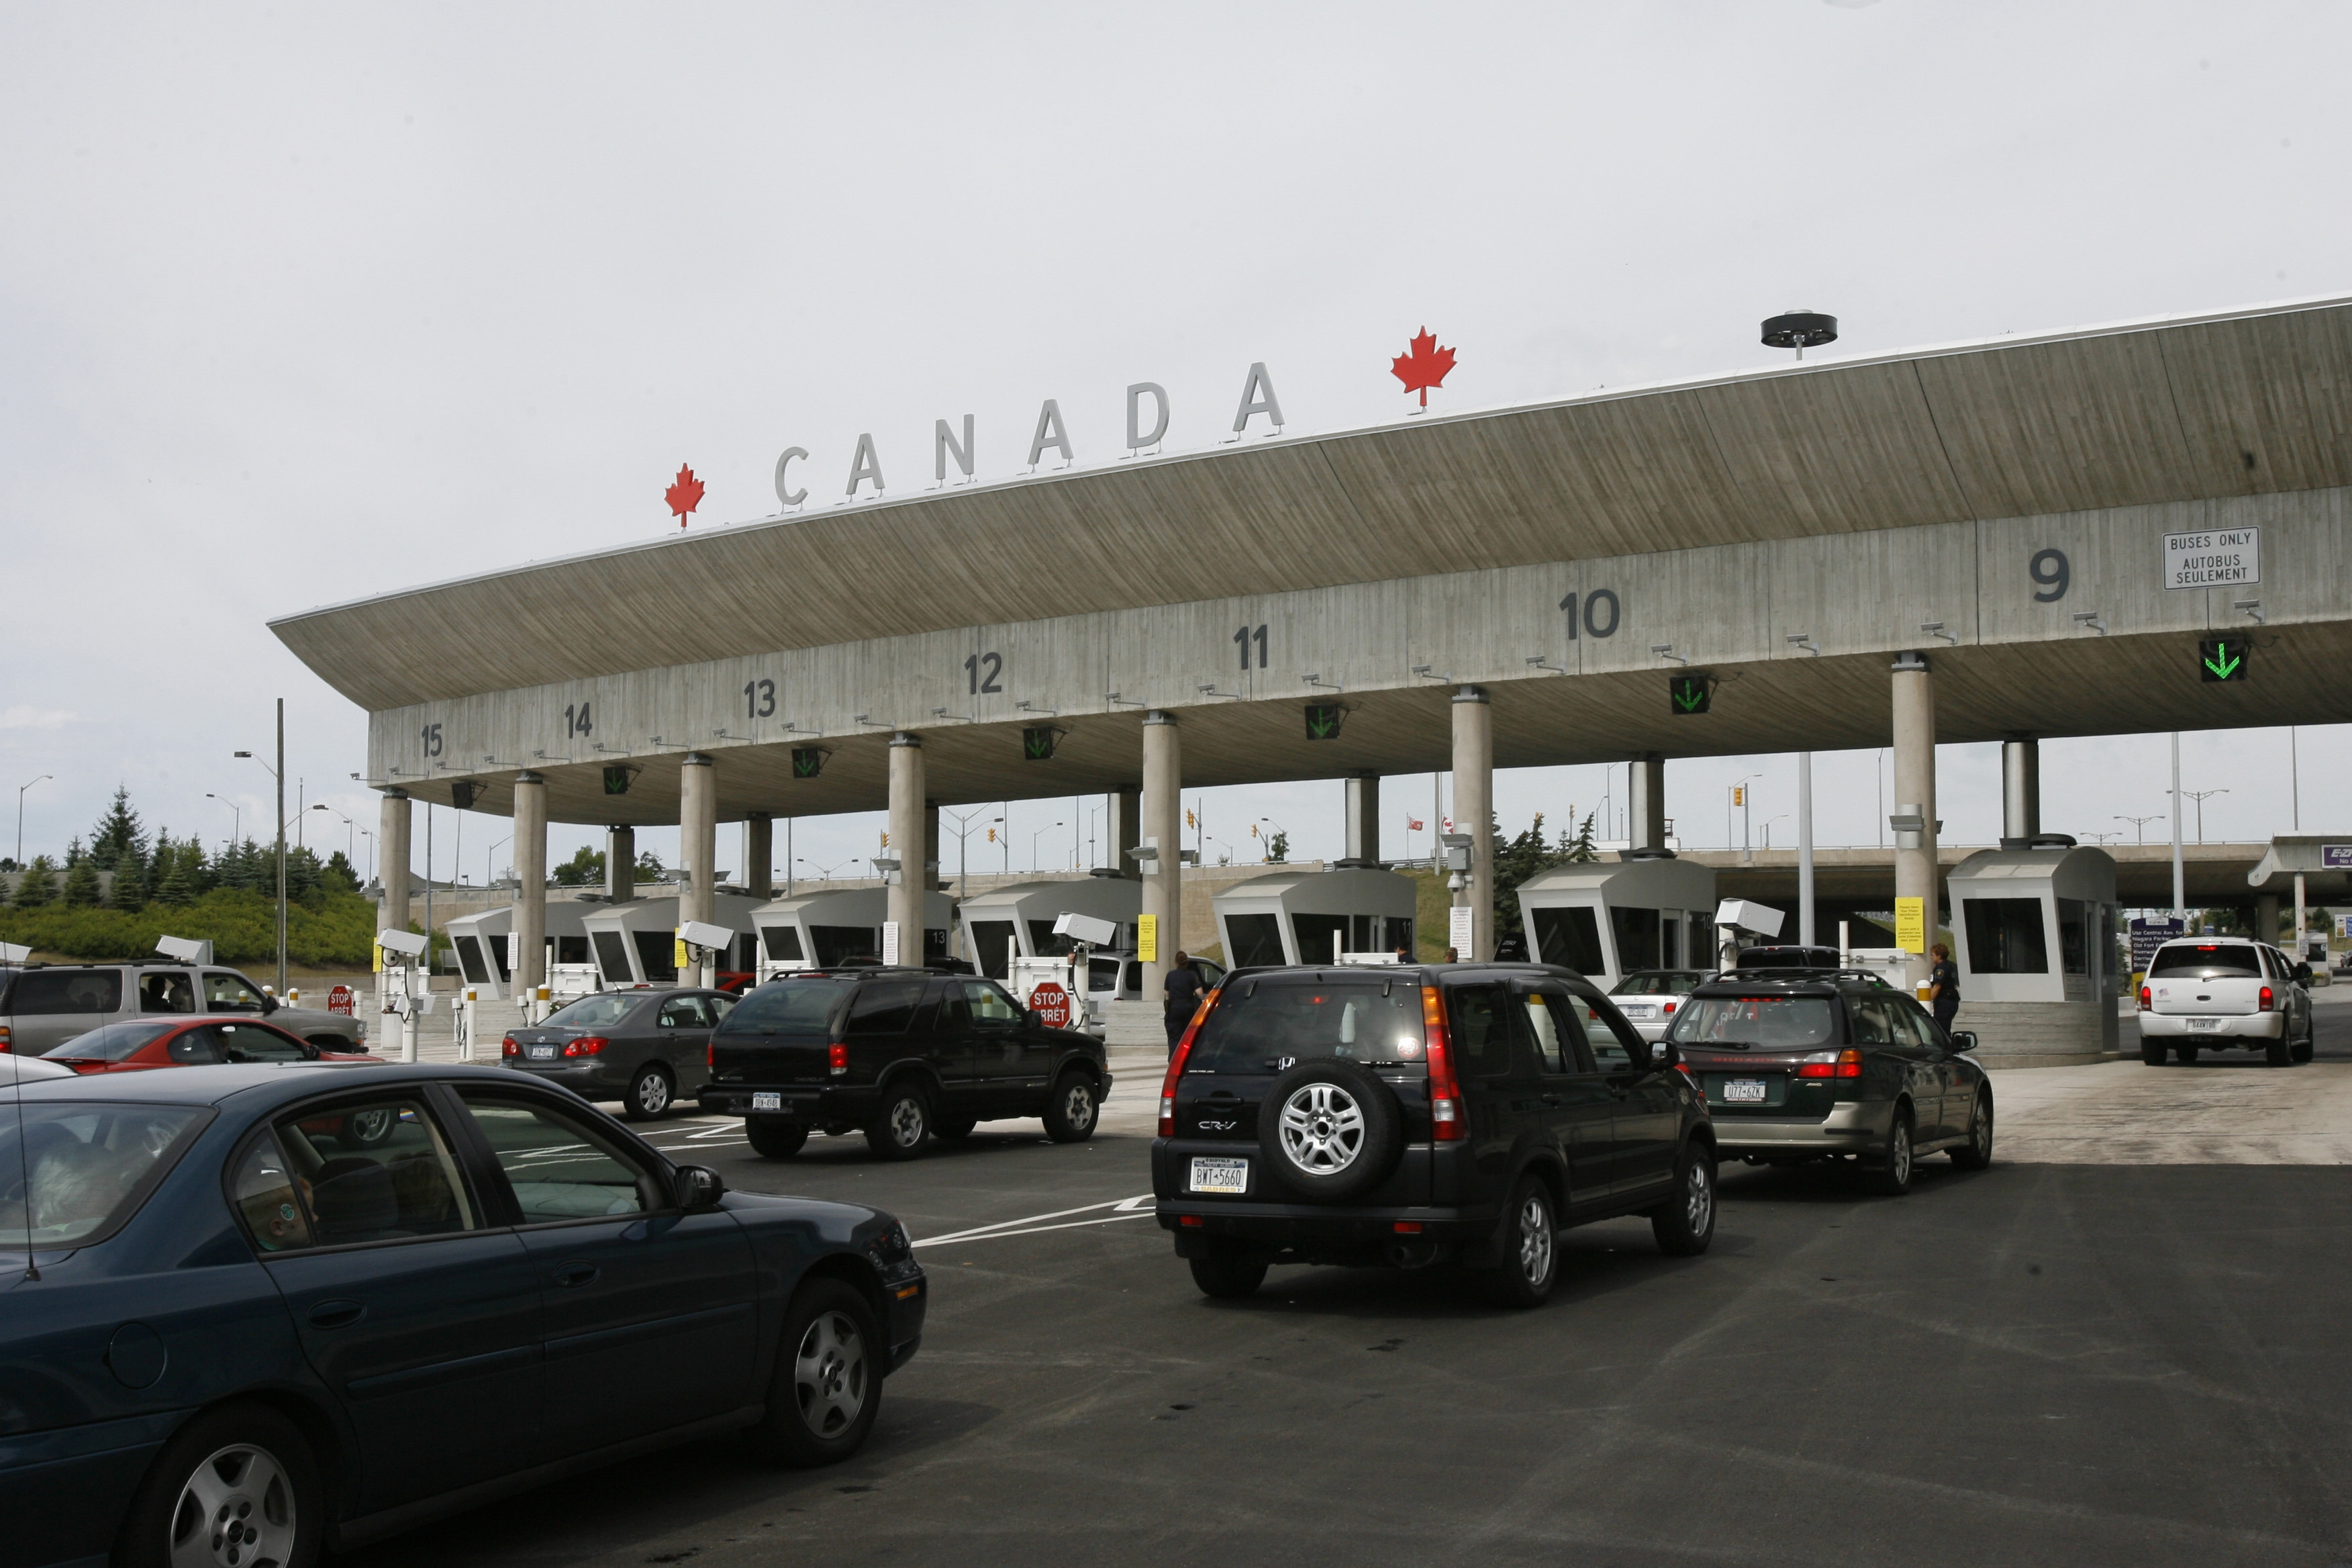 Travelers to Canada have occasionally faced lengthy delays at the border inspection booths. (Derek Gee/Buffalo News file photo)